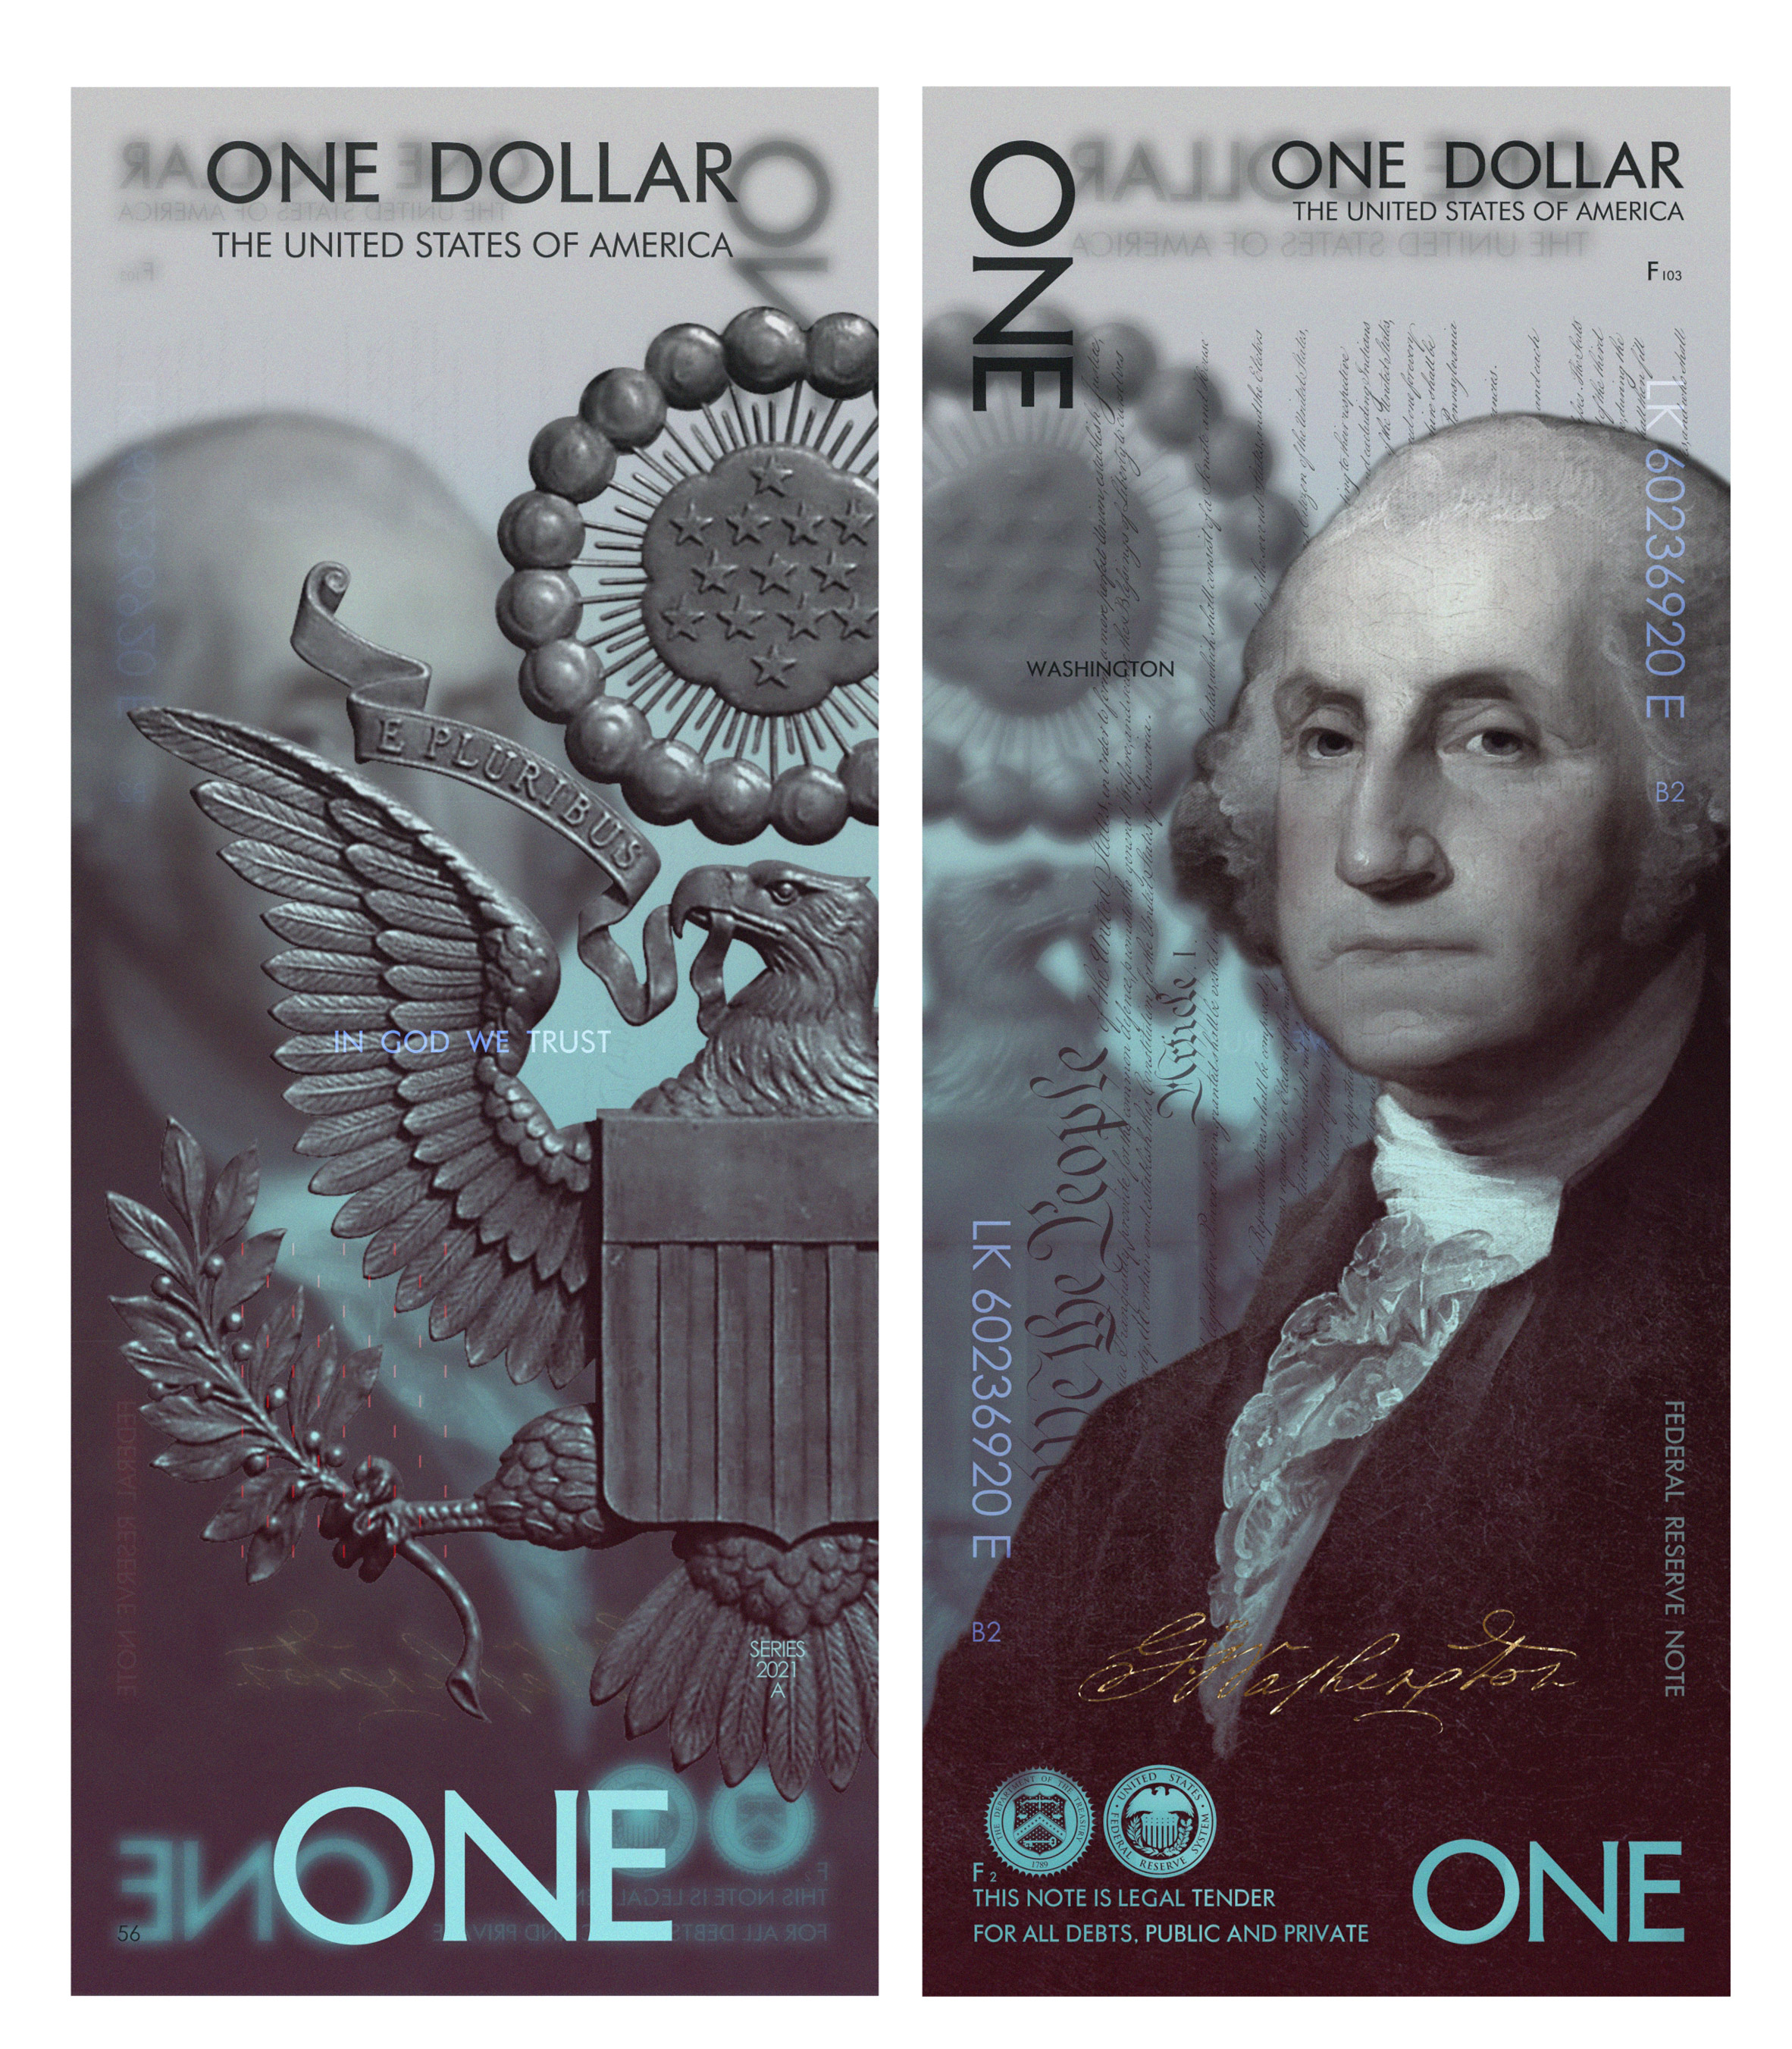 The US Dollar Gets a Cool New Look by Designer Andrey Avgust - PLAIN Magazine